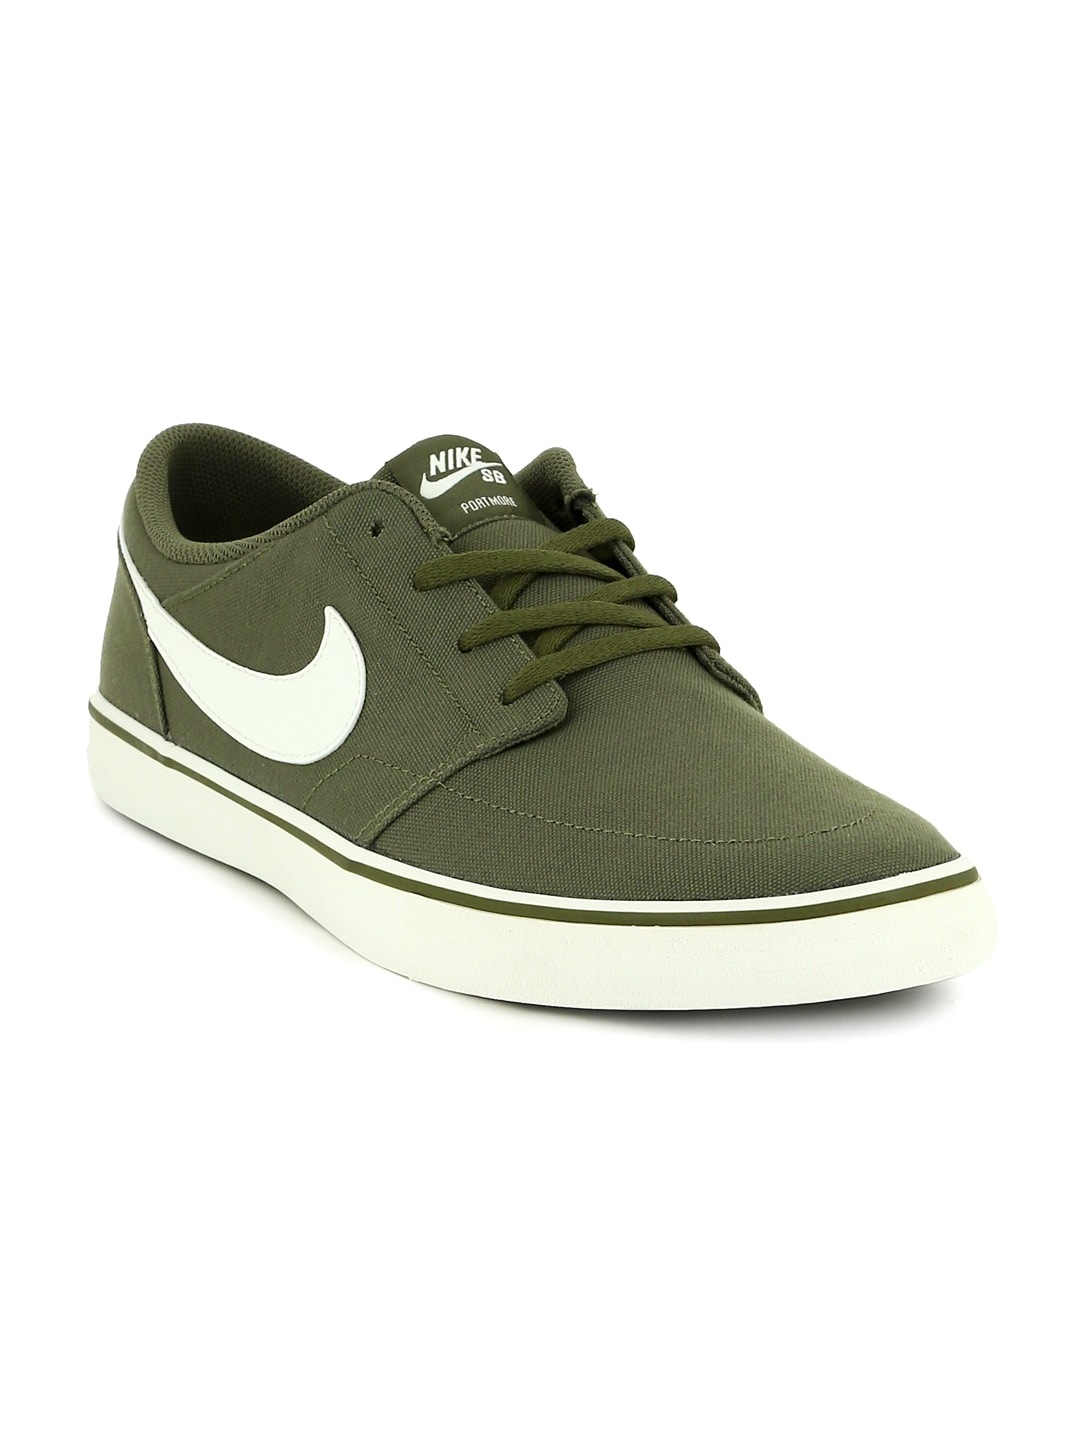 Buy Nike SB PORTMORE II SOLAR Men's Olive Green Colored Skate Shoes Online at Best Price